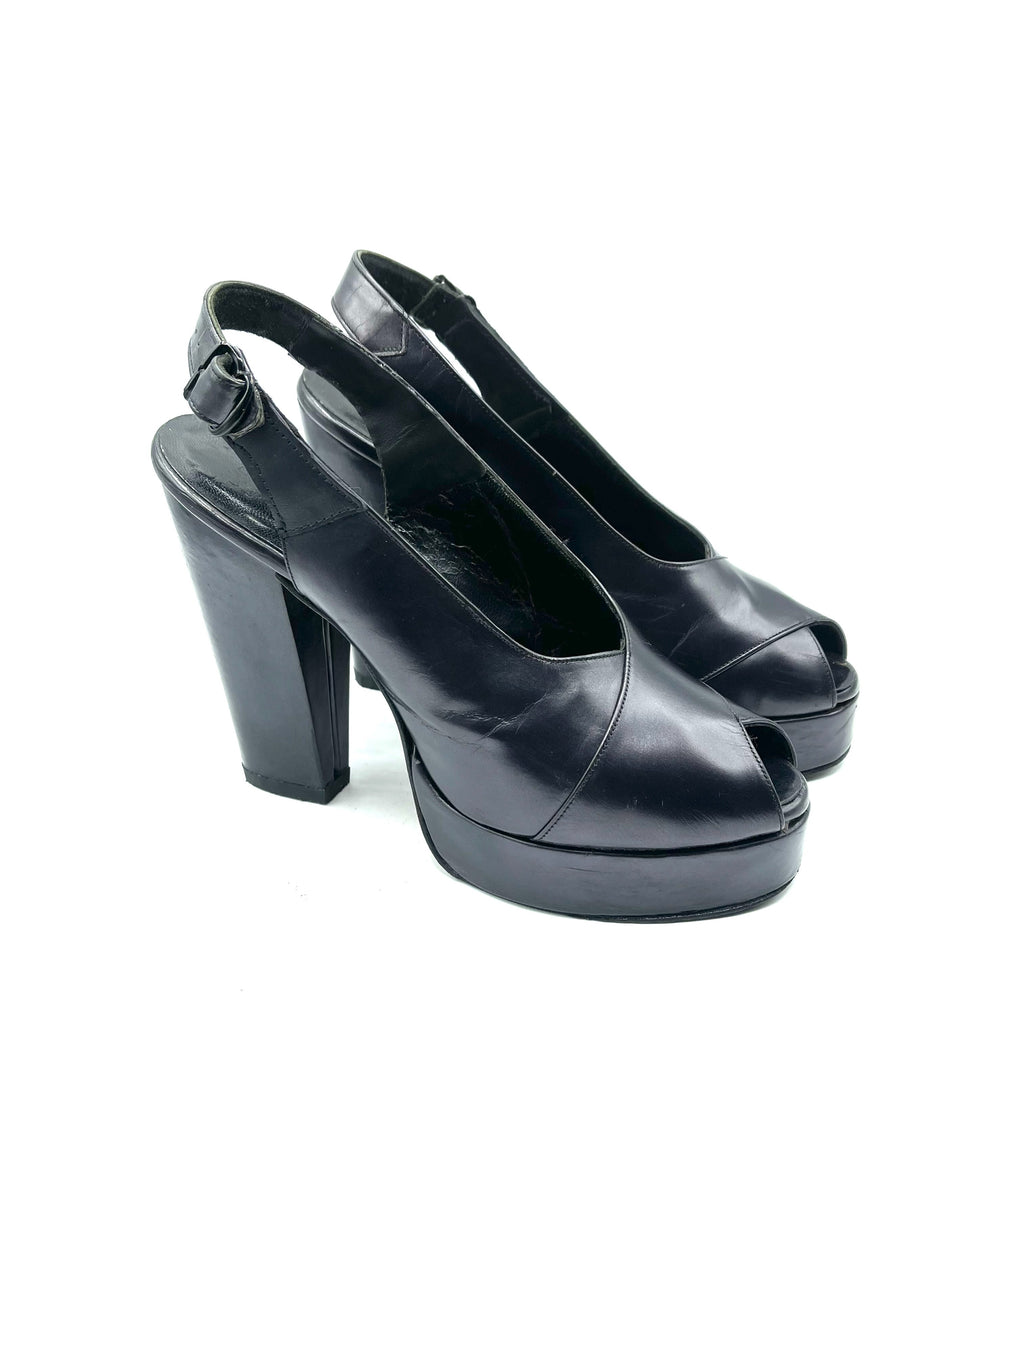 Kimel Iconic 70s Does 40s  Black Leather Platform Shoes SIDE 1 of 8